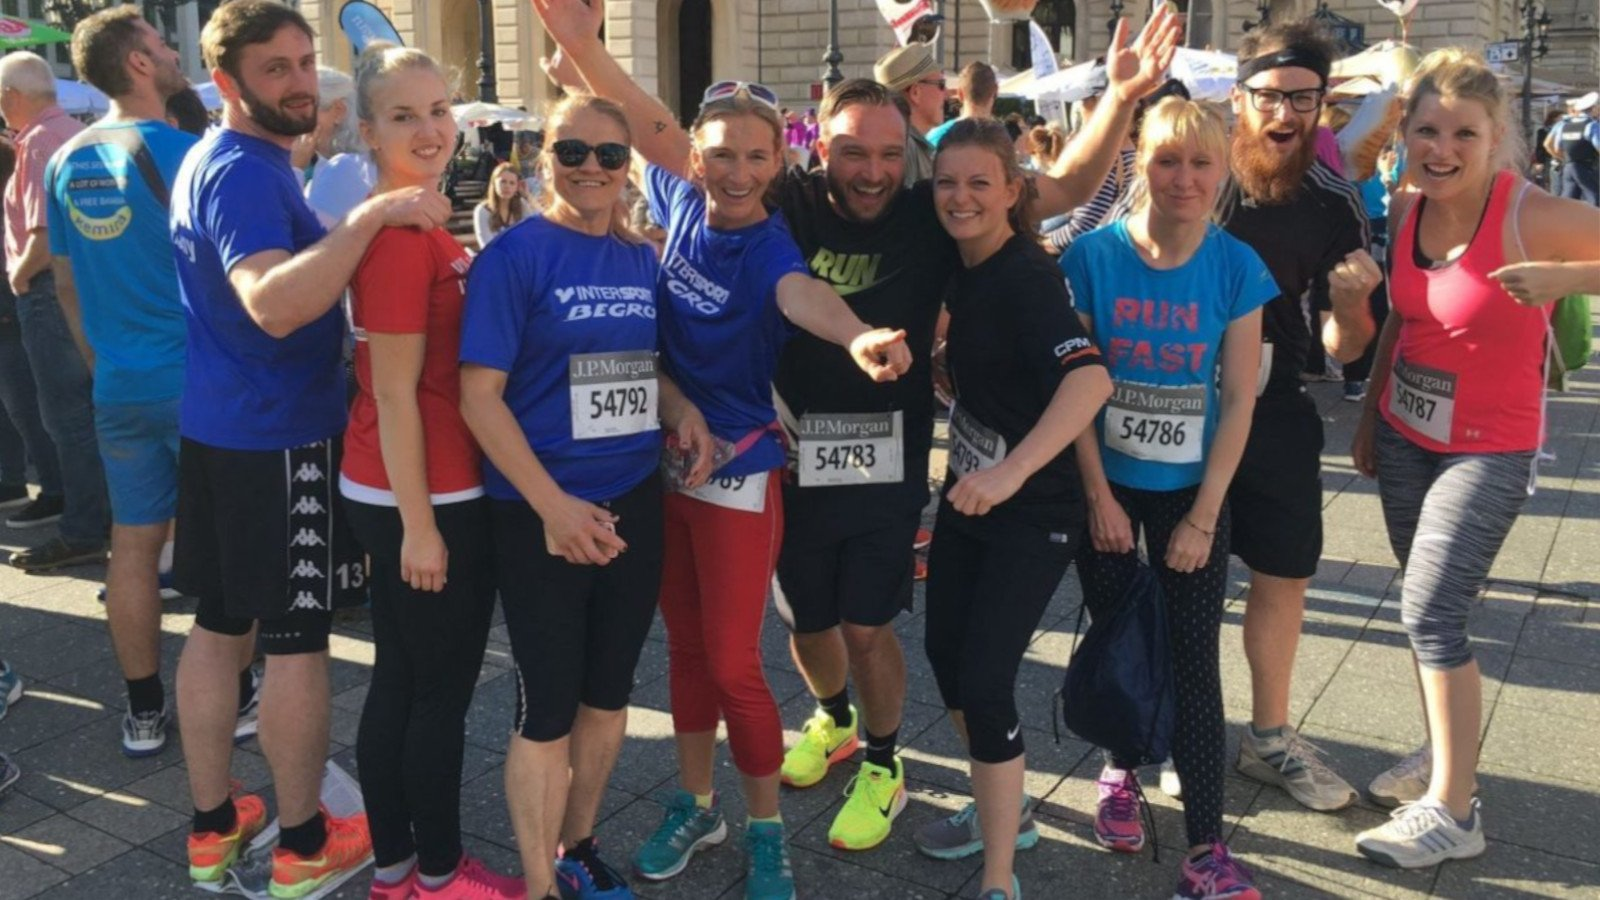 J.P. Morgan Corporate Challenge – Frankfurt